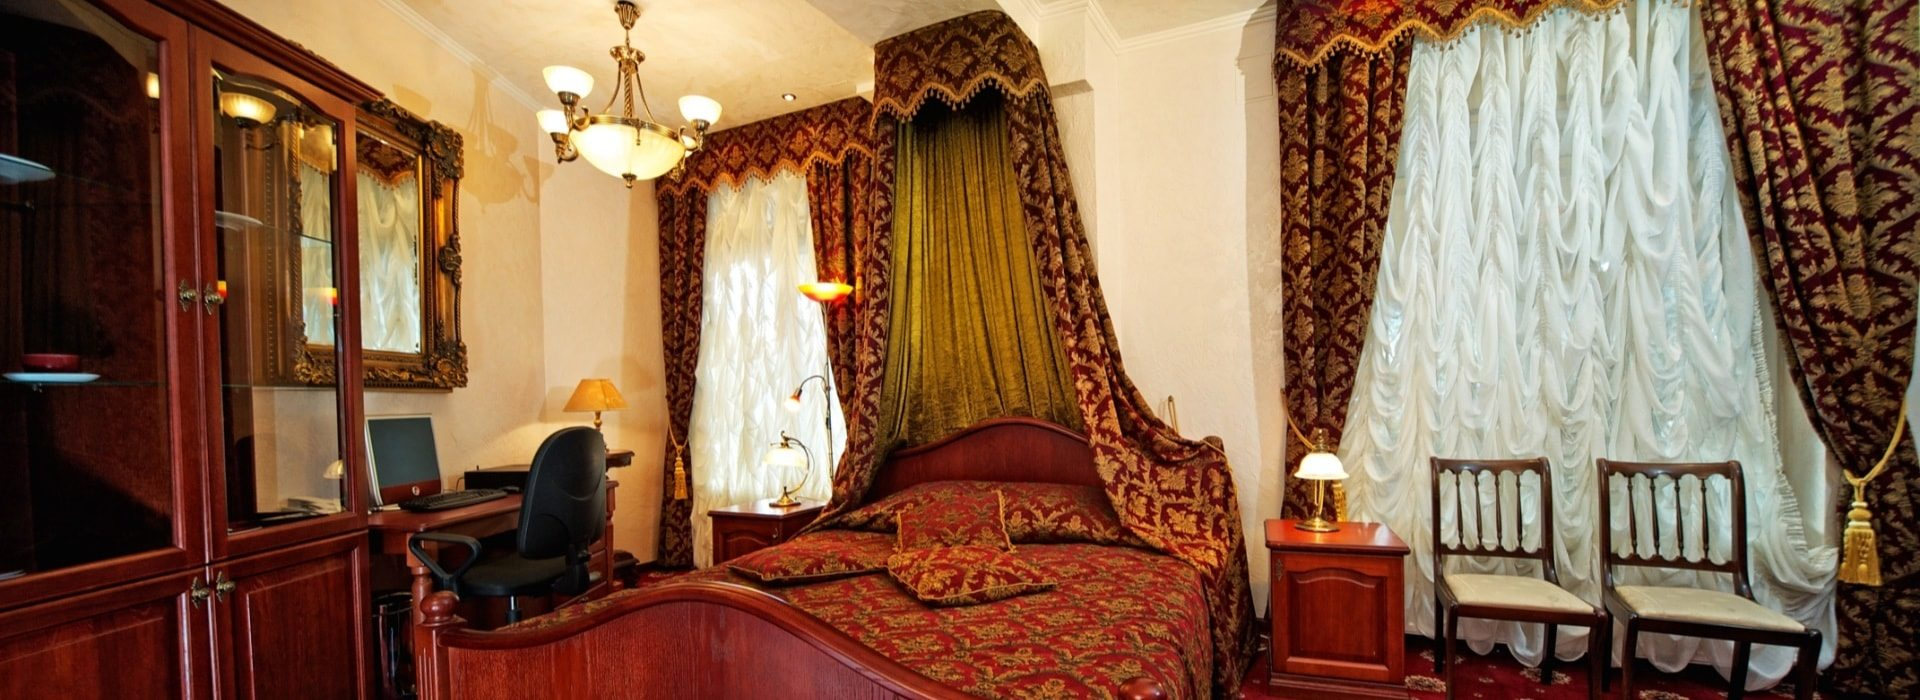 Bedroom with dark wooden bed and furniture